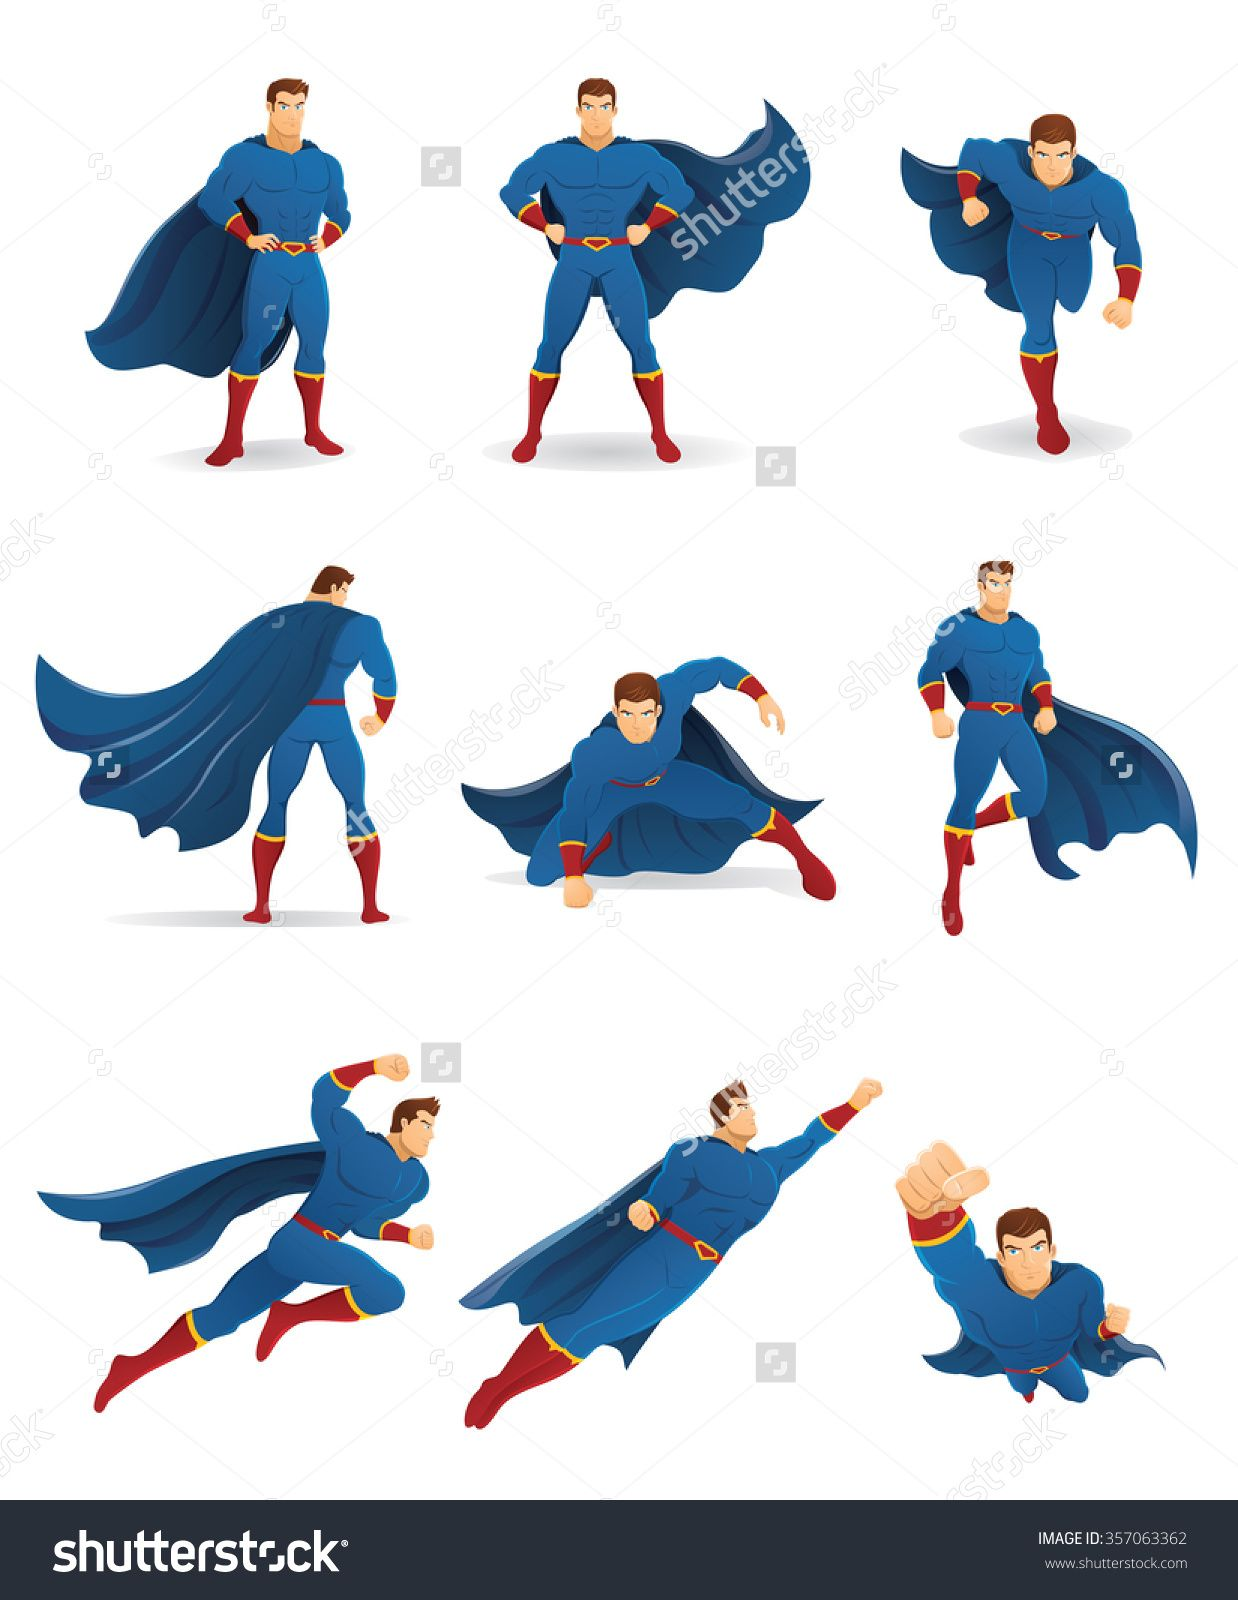 Super Character Design Poses Pdf : Superhero poses reference sök på google character